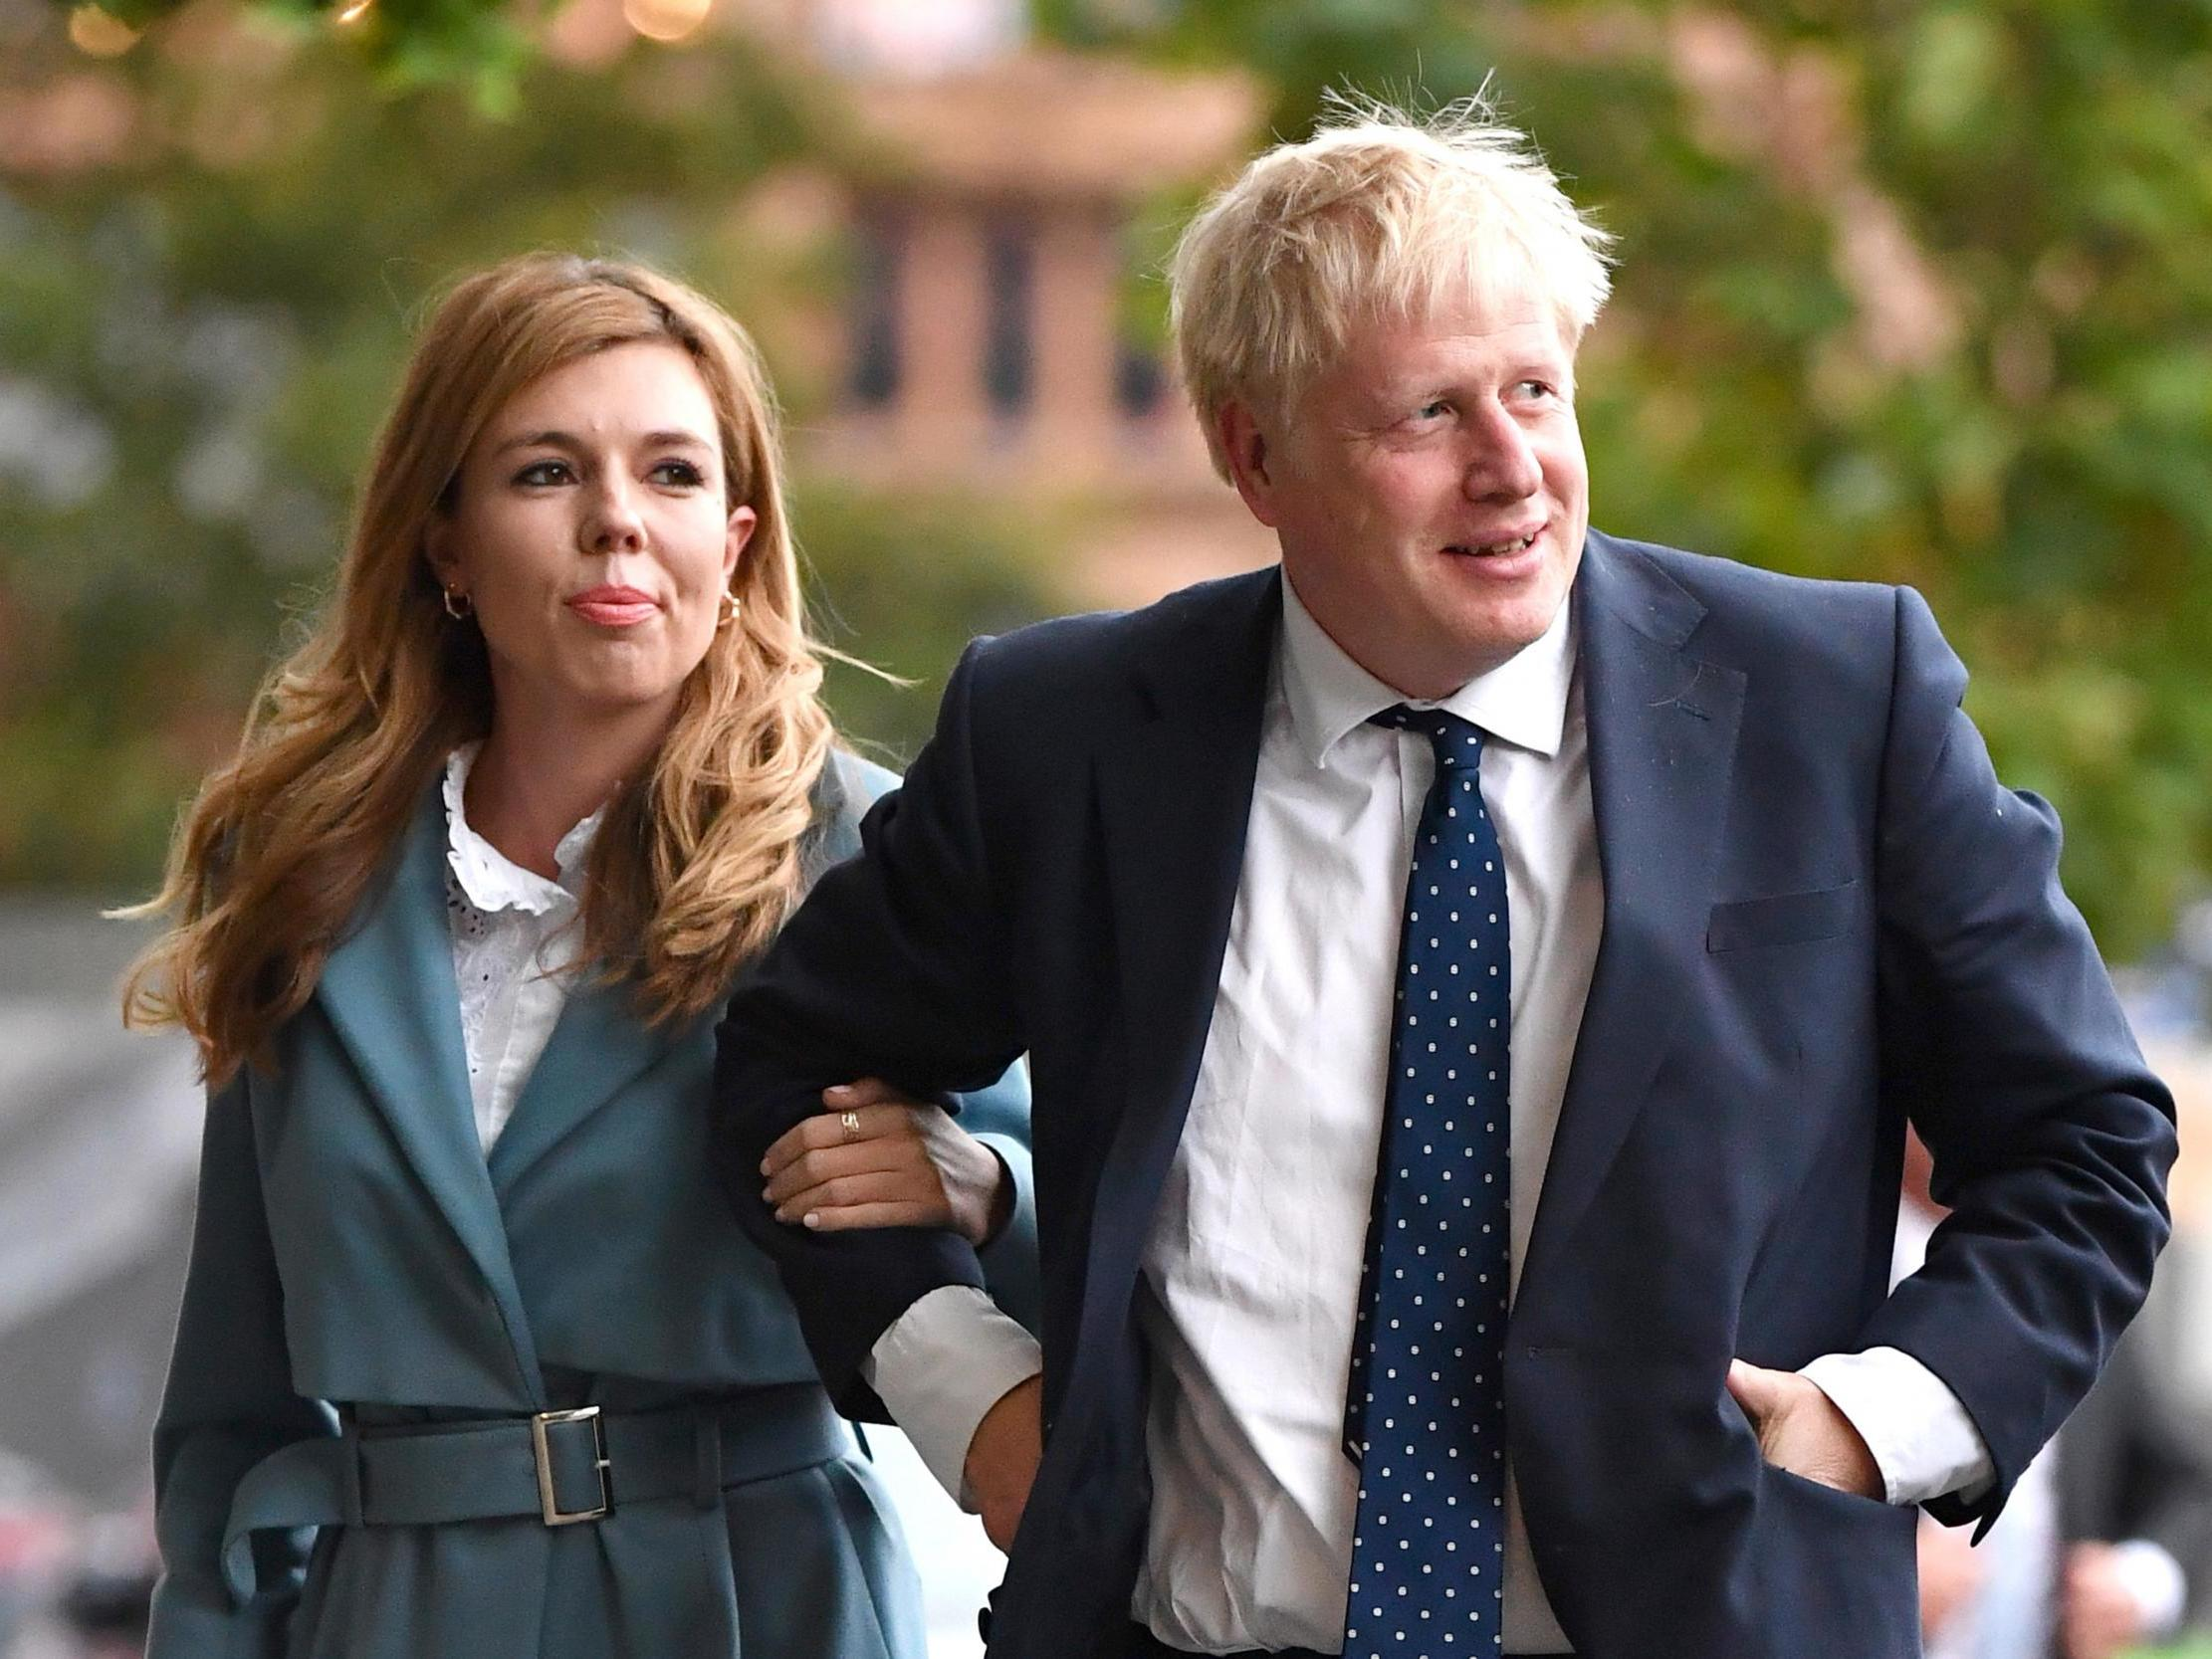 Boris Johnson coronavirus: Downing Street confirms Carrie Symonds is not self-isolating with prime minister